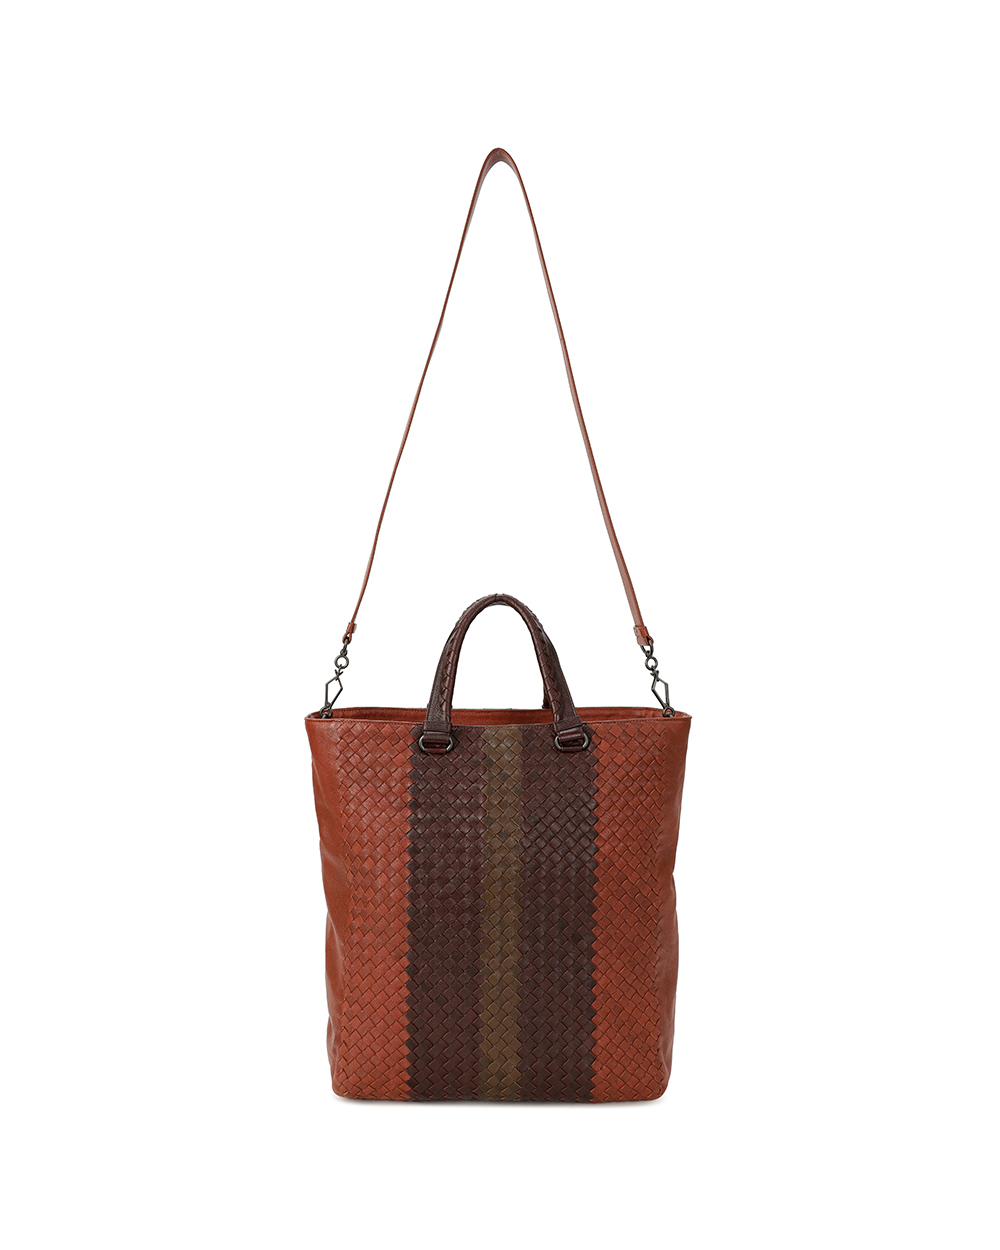 Woven Leather Handbag 1